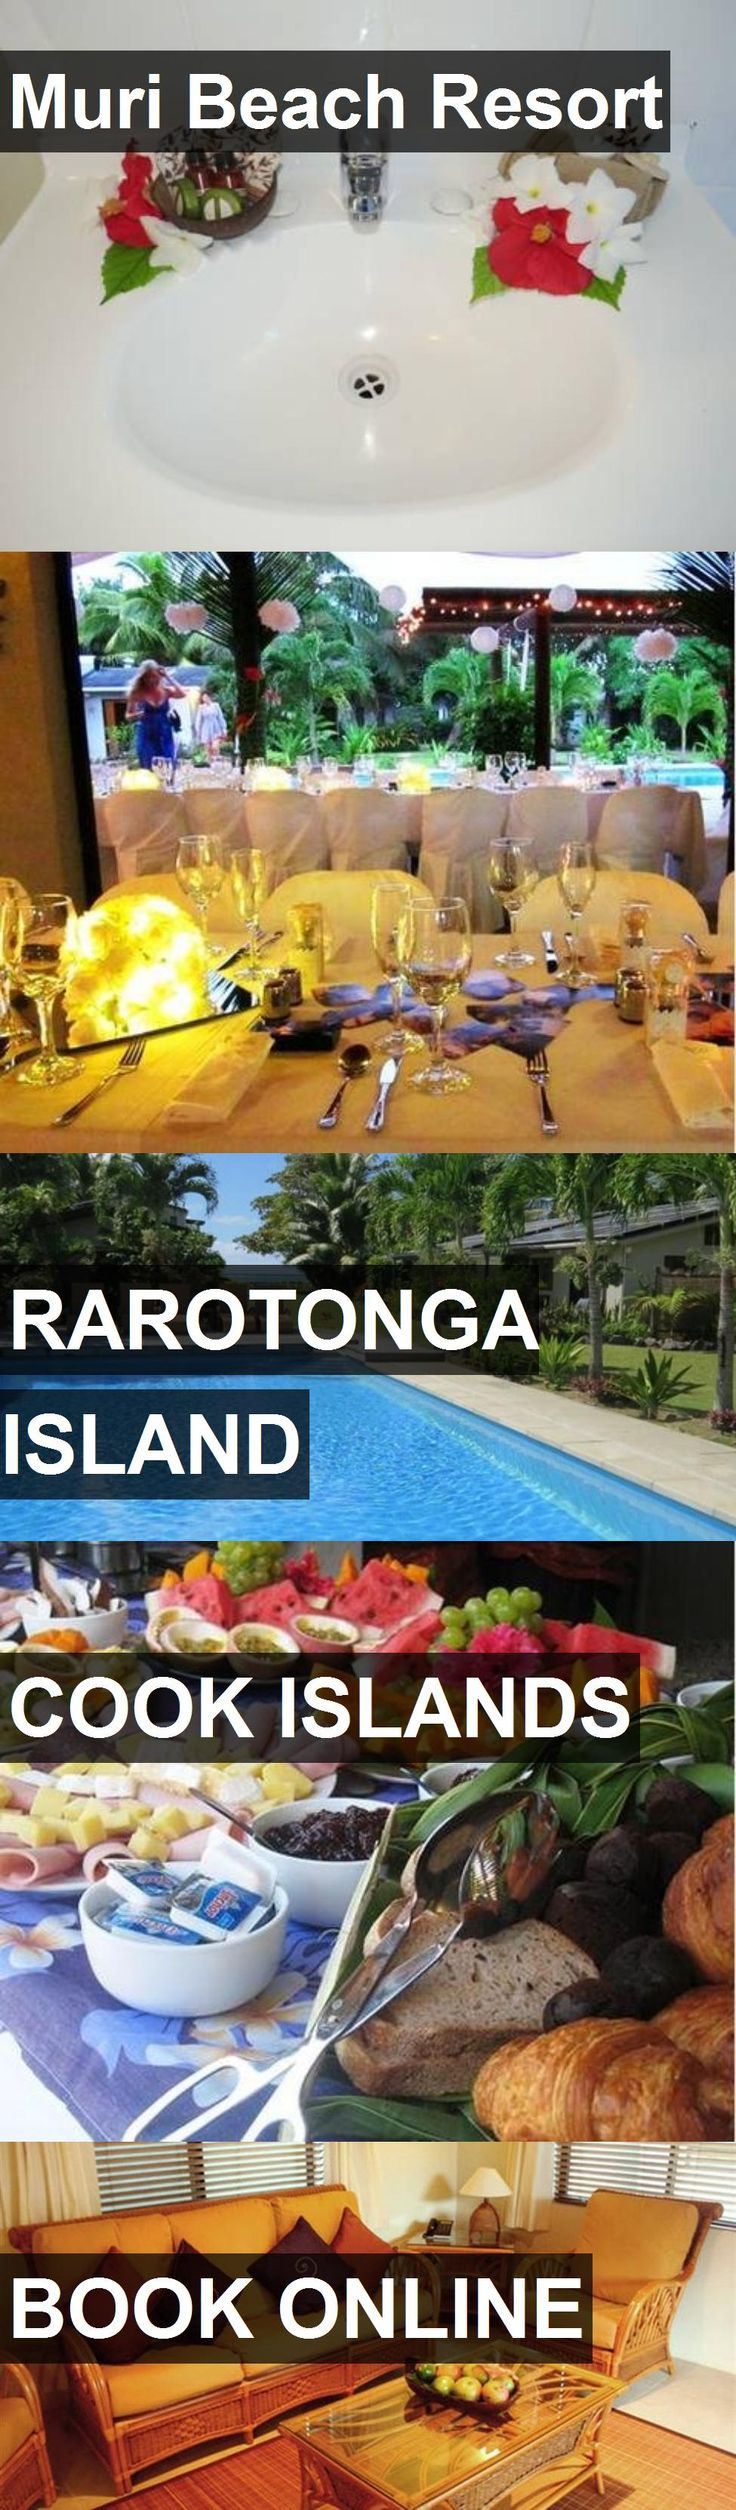 Hotel Muri Beach Resort in Rarotonga Island, Cook Islands. For more information, photos, reviews and best prices please follow the link. #CookIslands #RarotongaIsland #travel #vacation #hotel